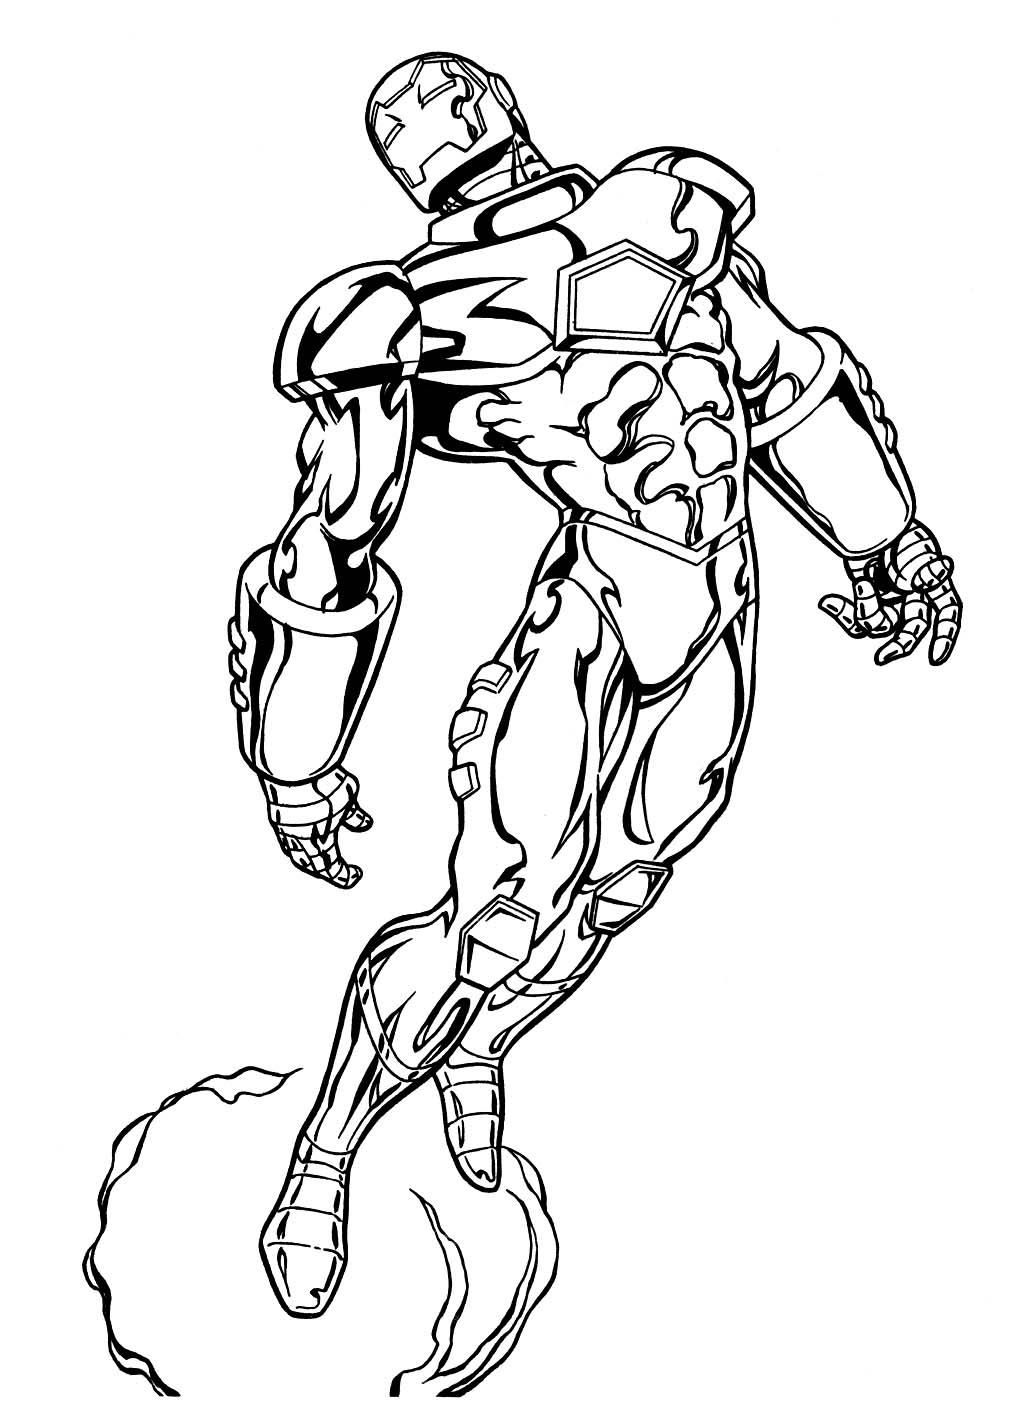 Marvel superheroes coloring pages for Kids | Dibujos Chicos ...